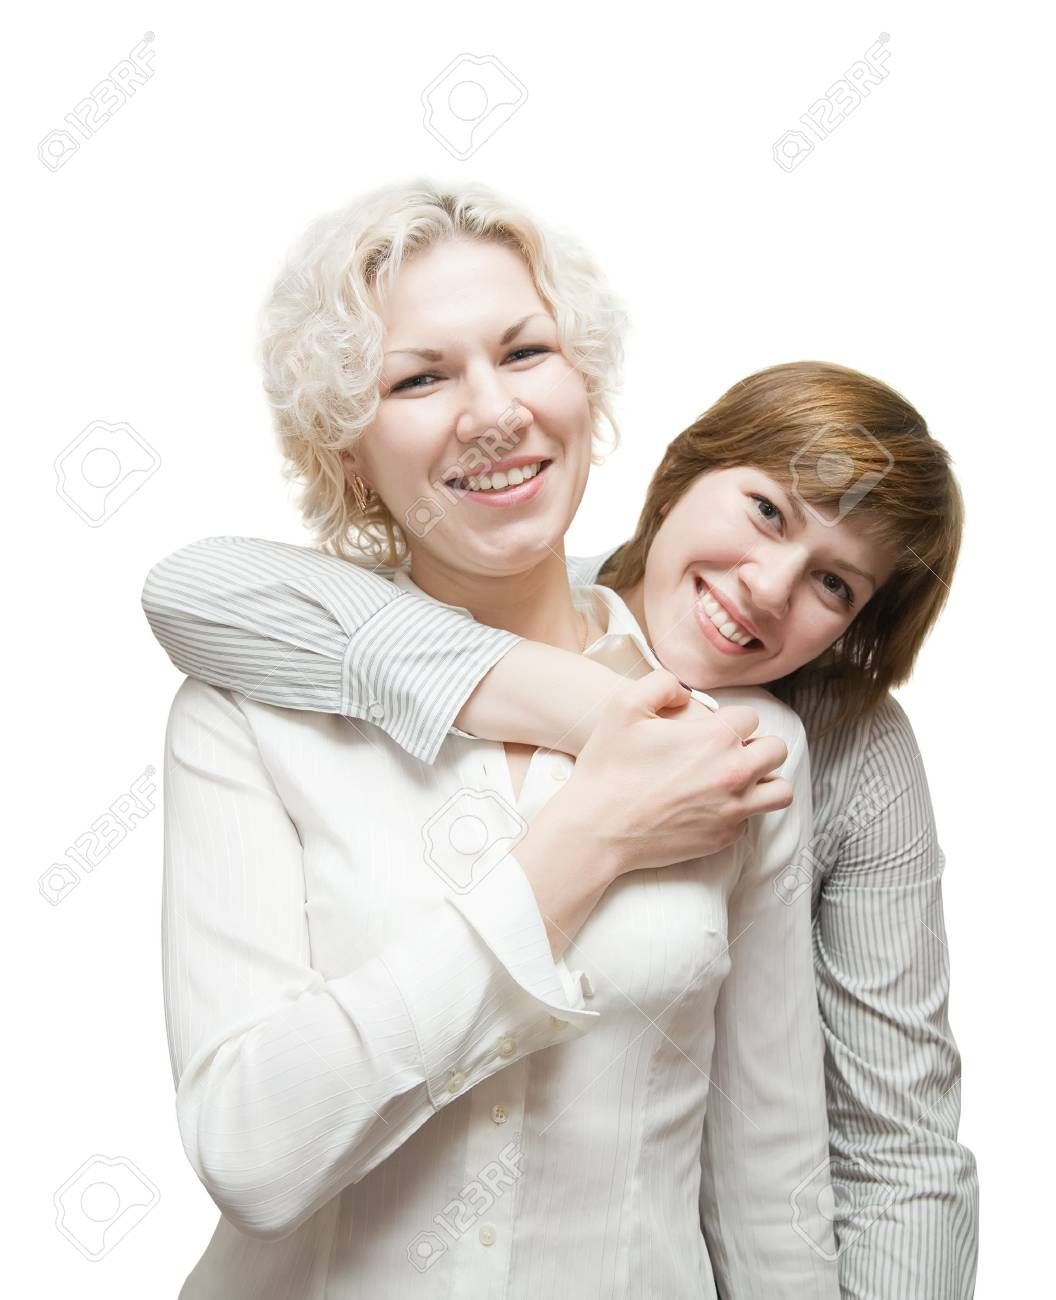 Two young happy girls over white background Stock Photo - 6374995